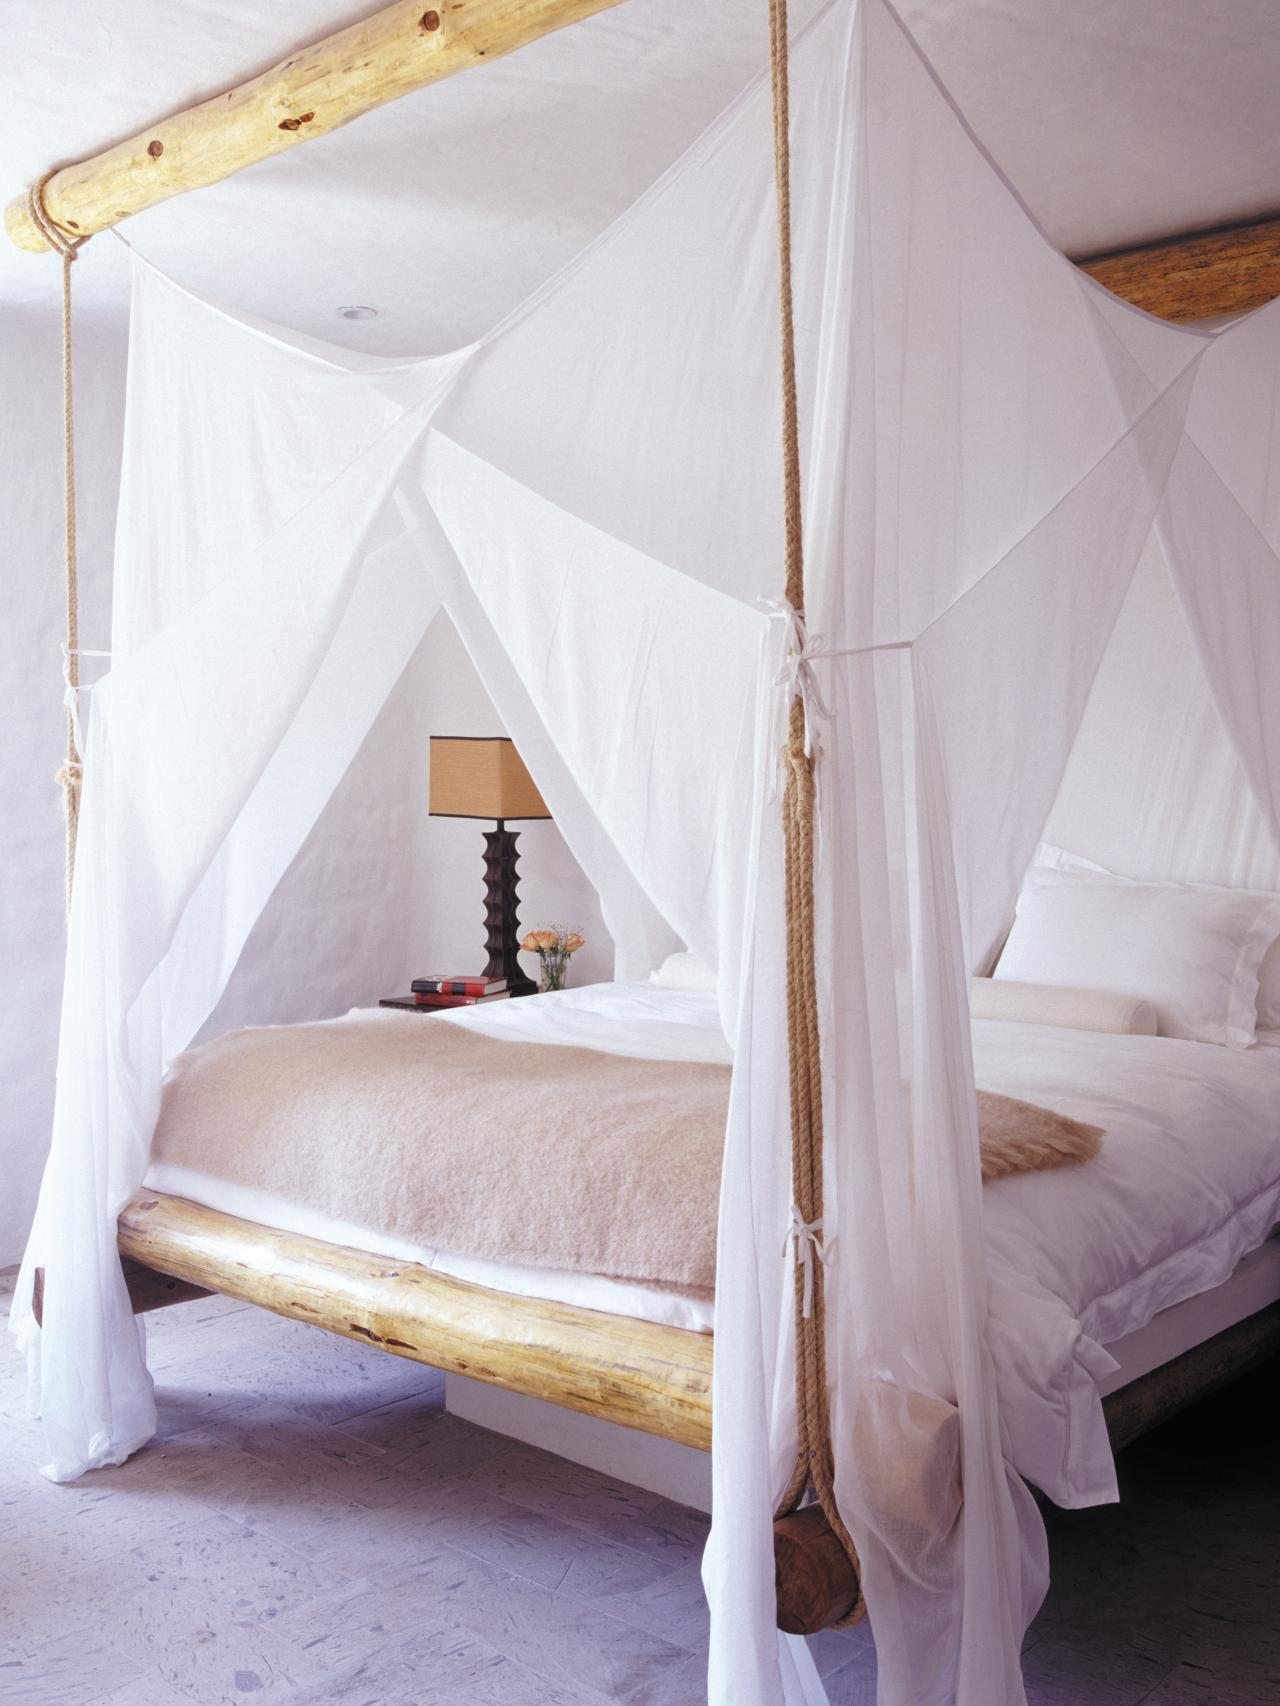 How To Build A Four Poster Bed Bohemian Bedroom Inspiration Four Poster Beds With Boho